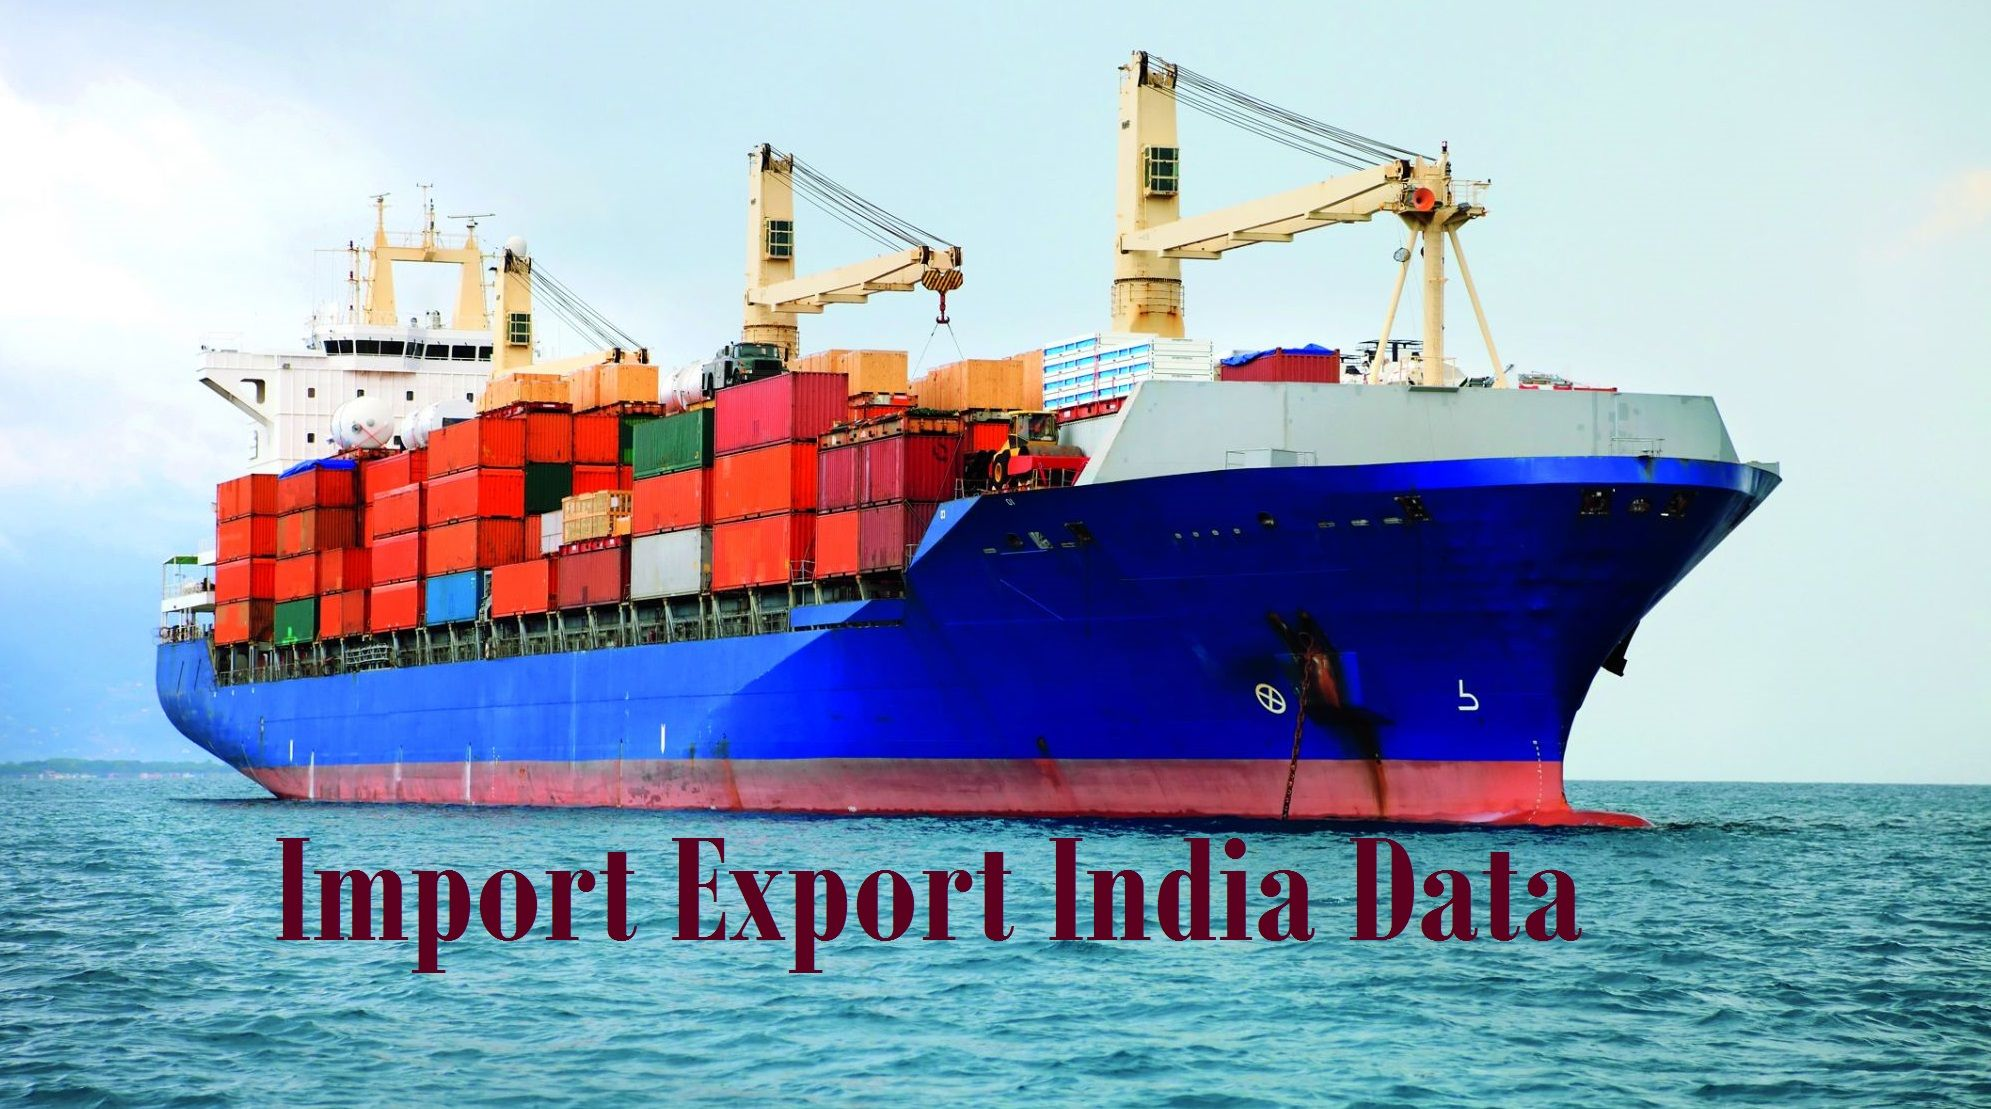 The availability of import export India data is helping